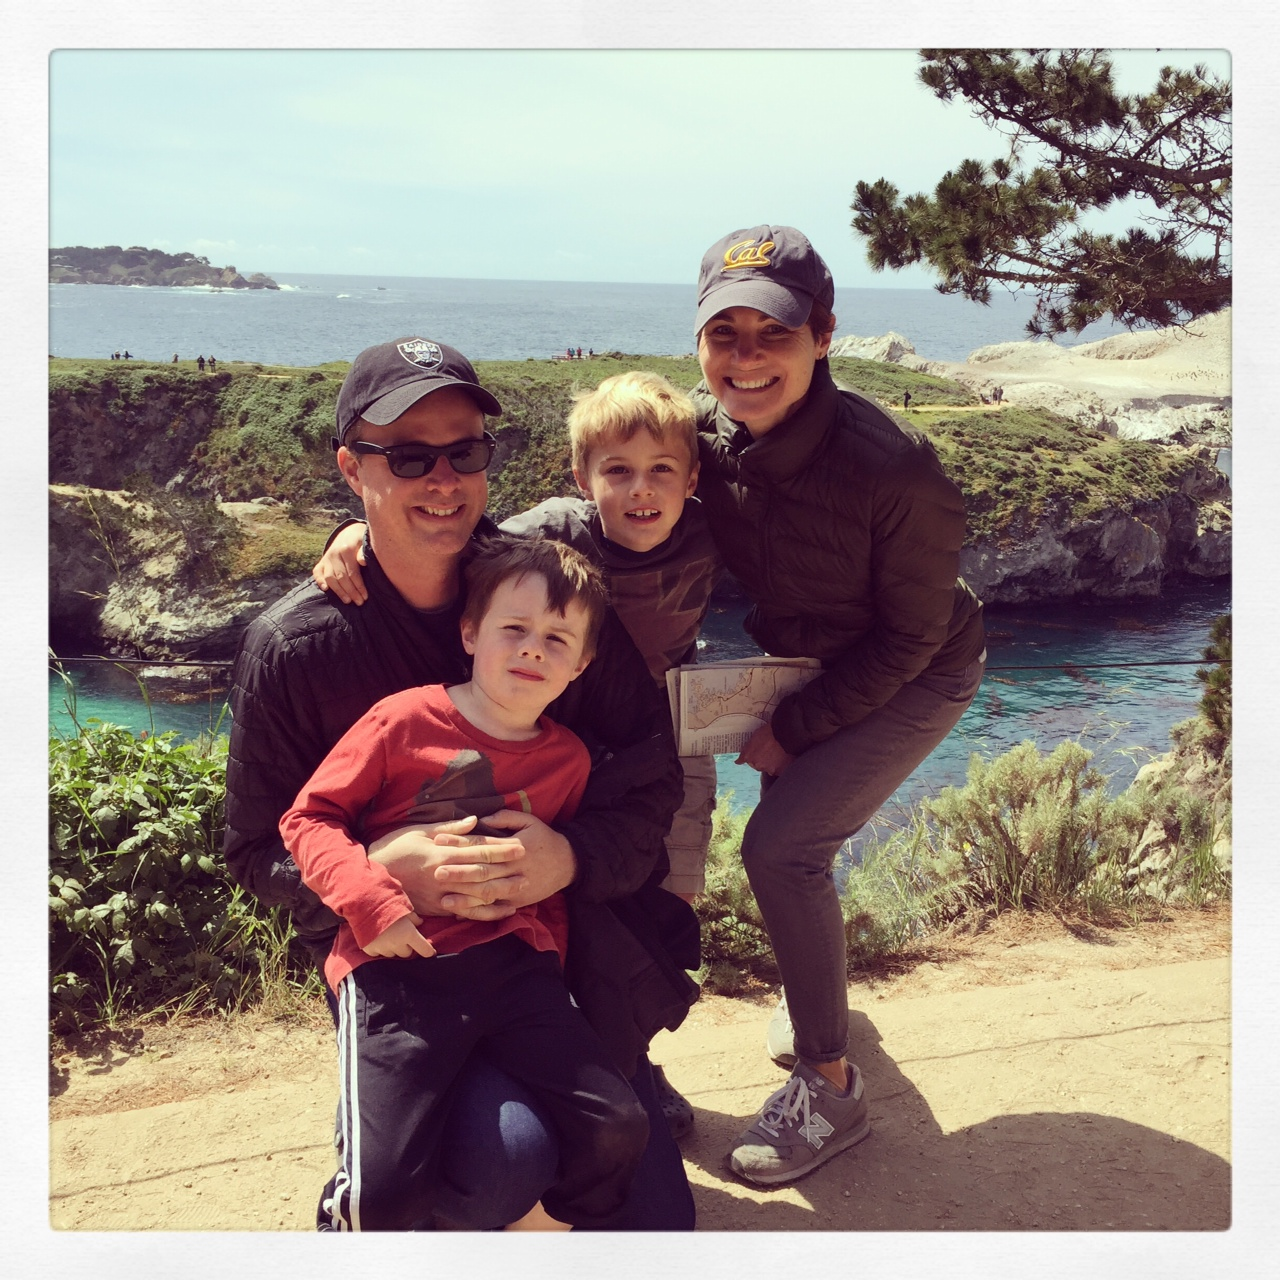 Tracy, right, with her husband and two sons at Point Lobos State Natural Reserve.